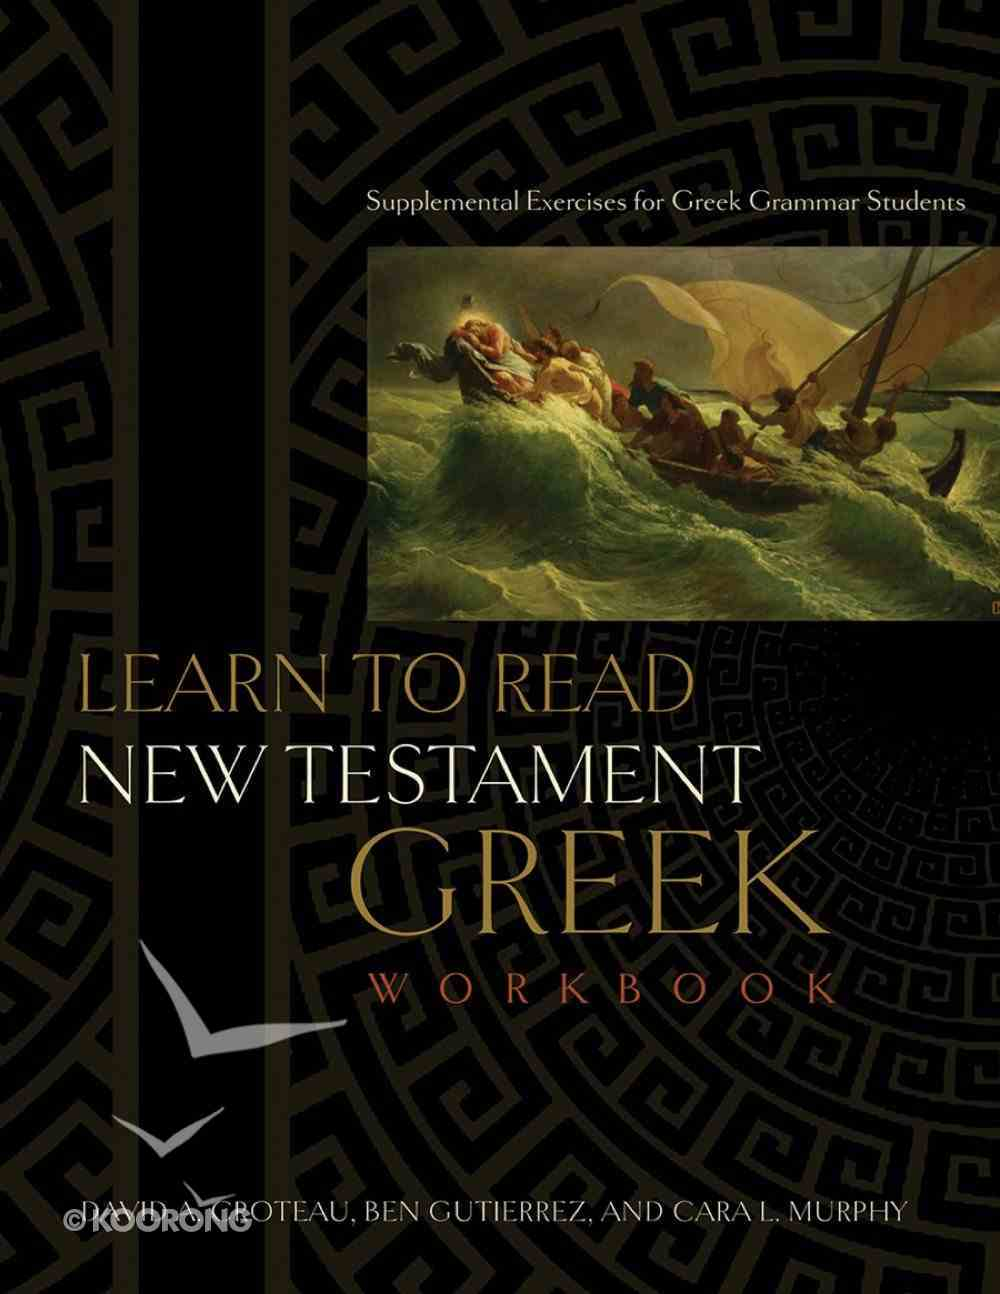 Learn to Read New Testament Greek (3rd Edition) eBook